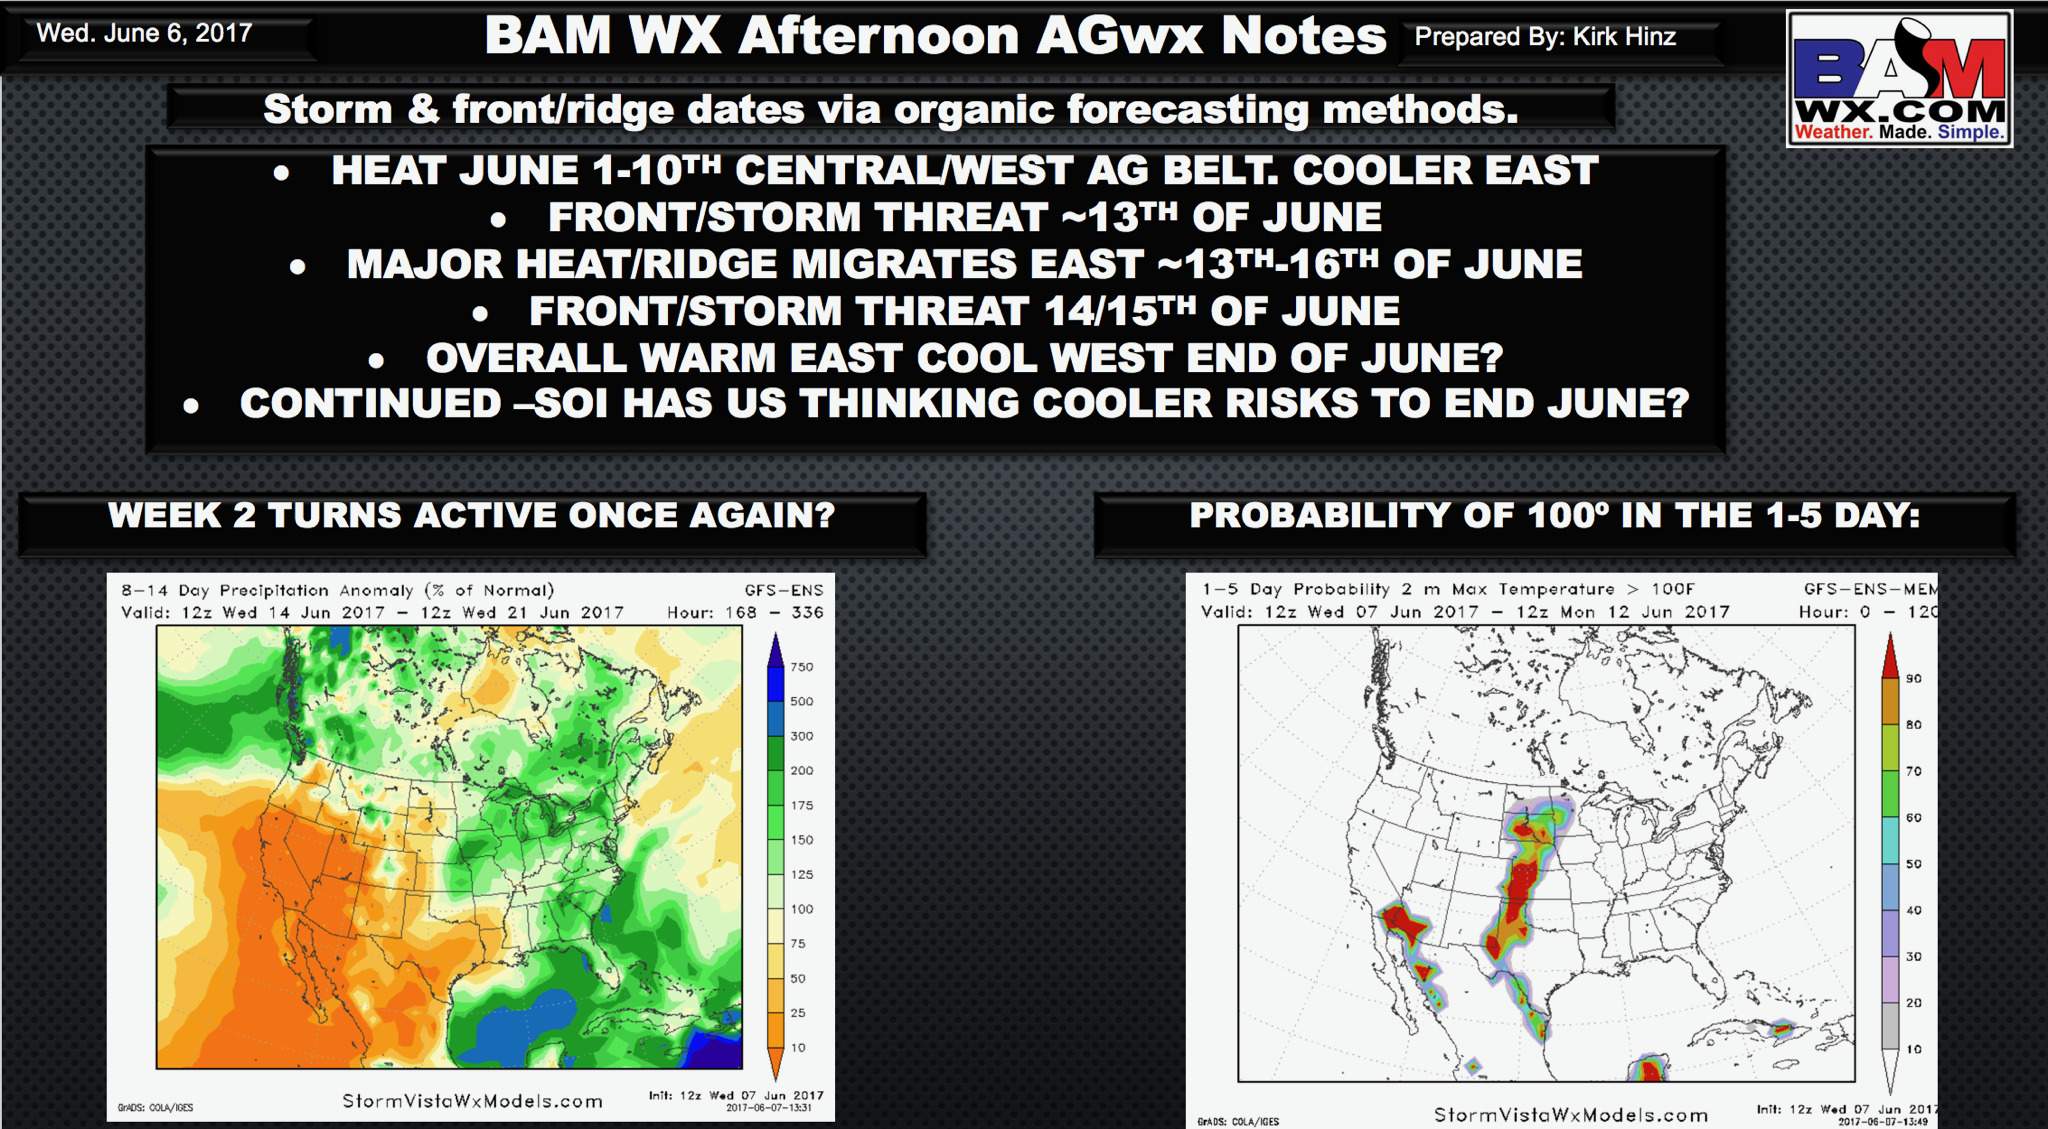 Wednesday PM #AGwx Report: Updated Midday Info, Discussing the Rest of June.